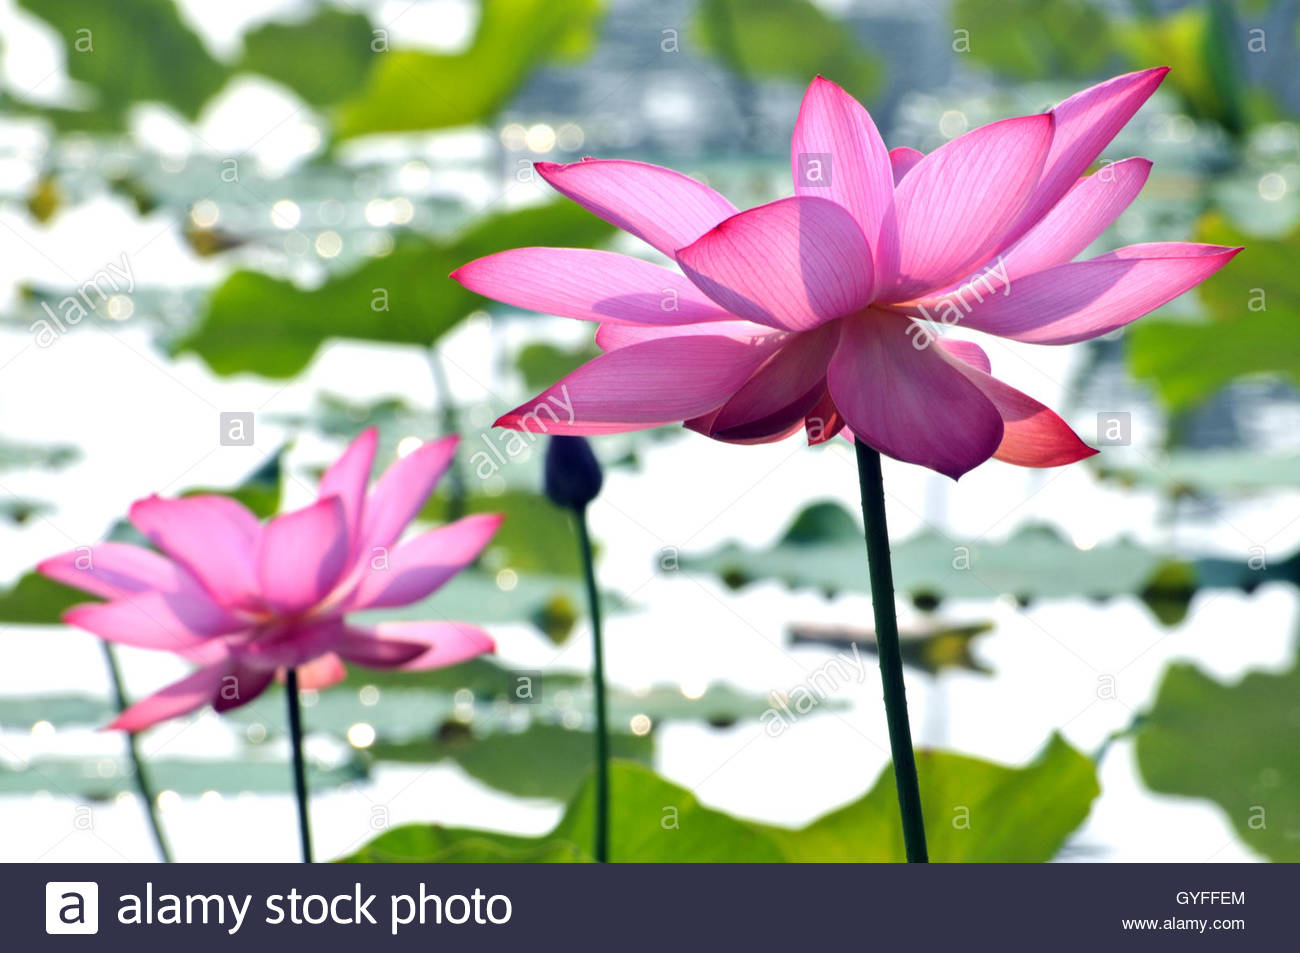 Blossom pink lotus flowers in pond stock photo 120199372 alamy blossom pink lotus flowers in pond izmirmasajfo